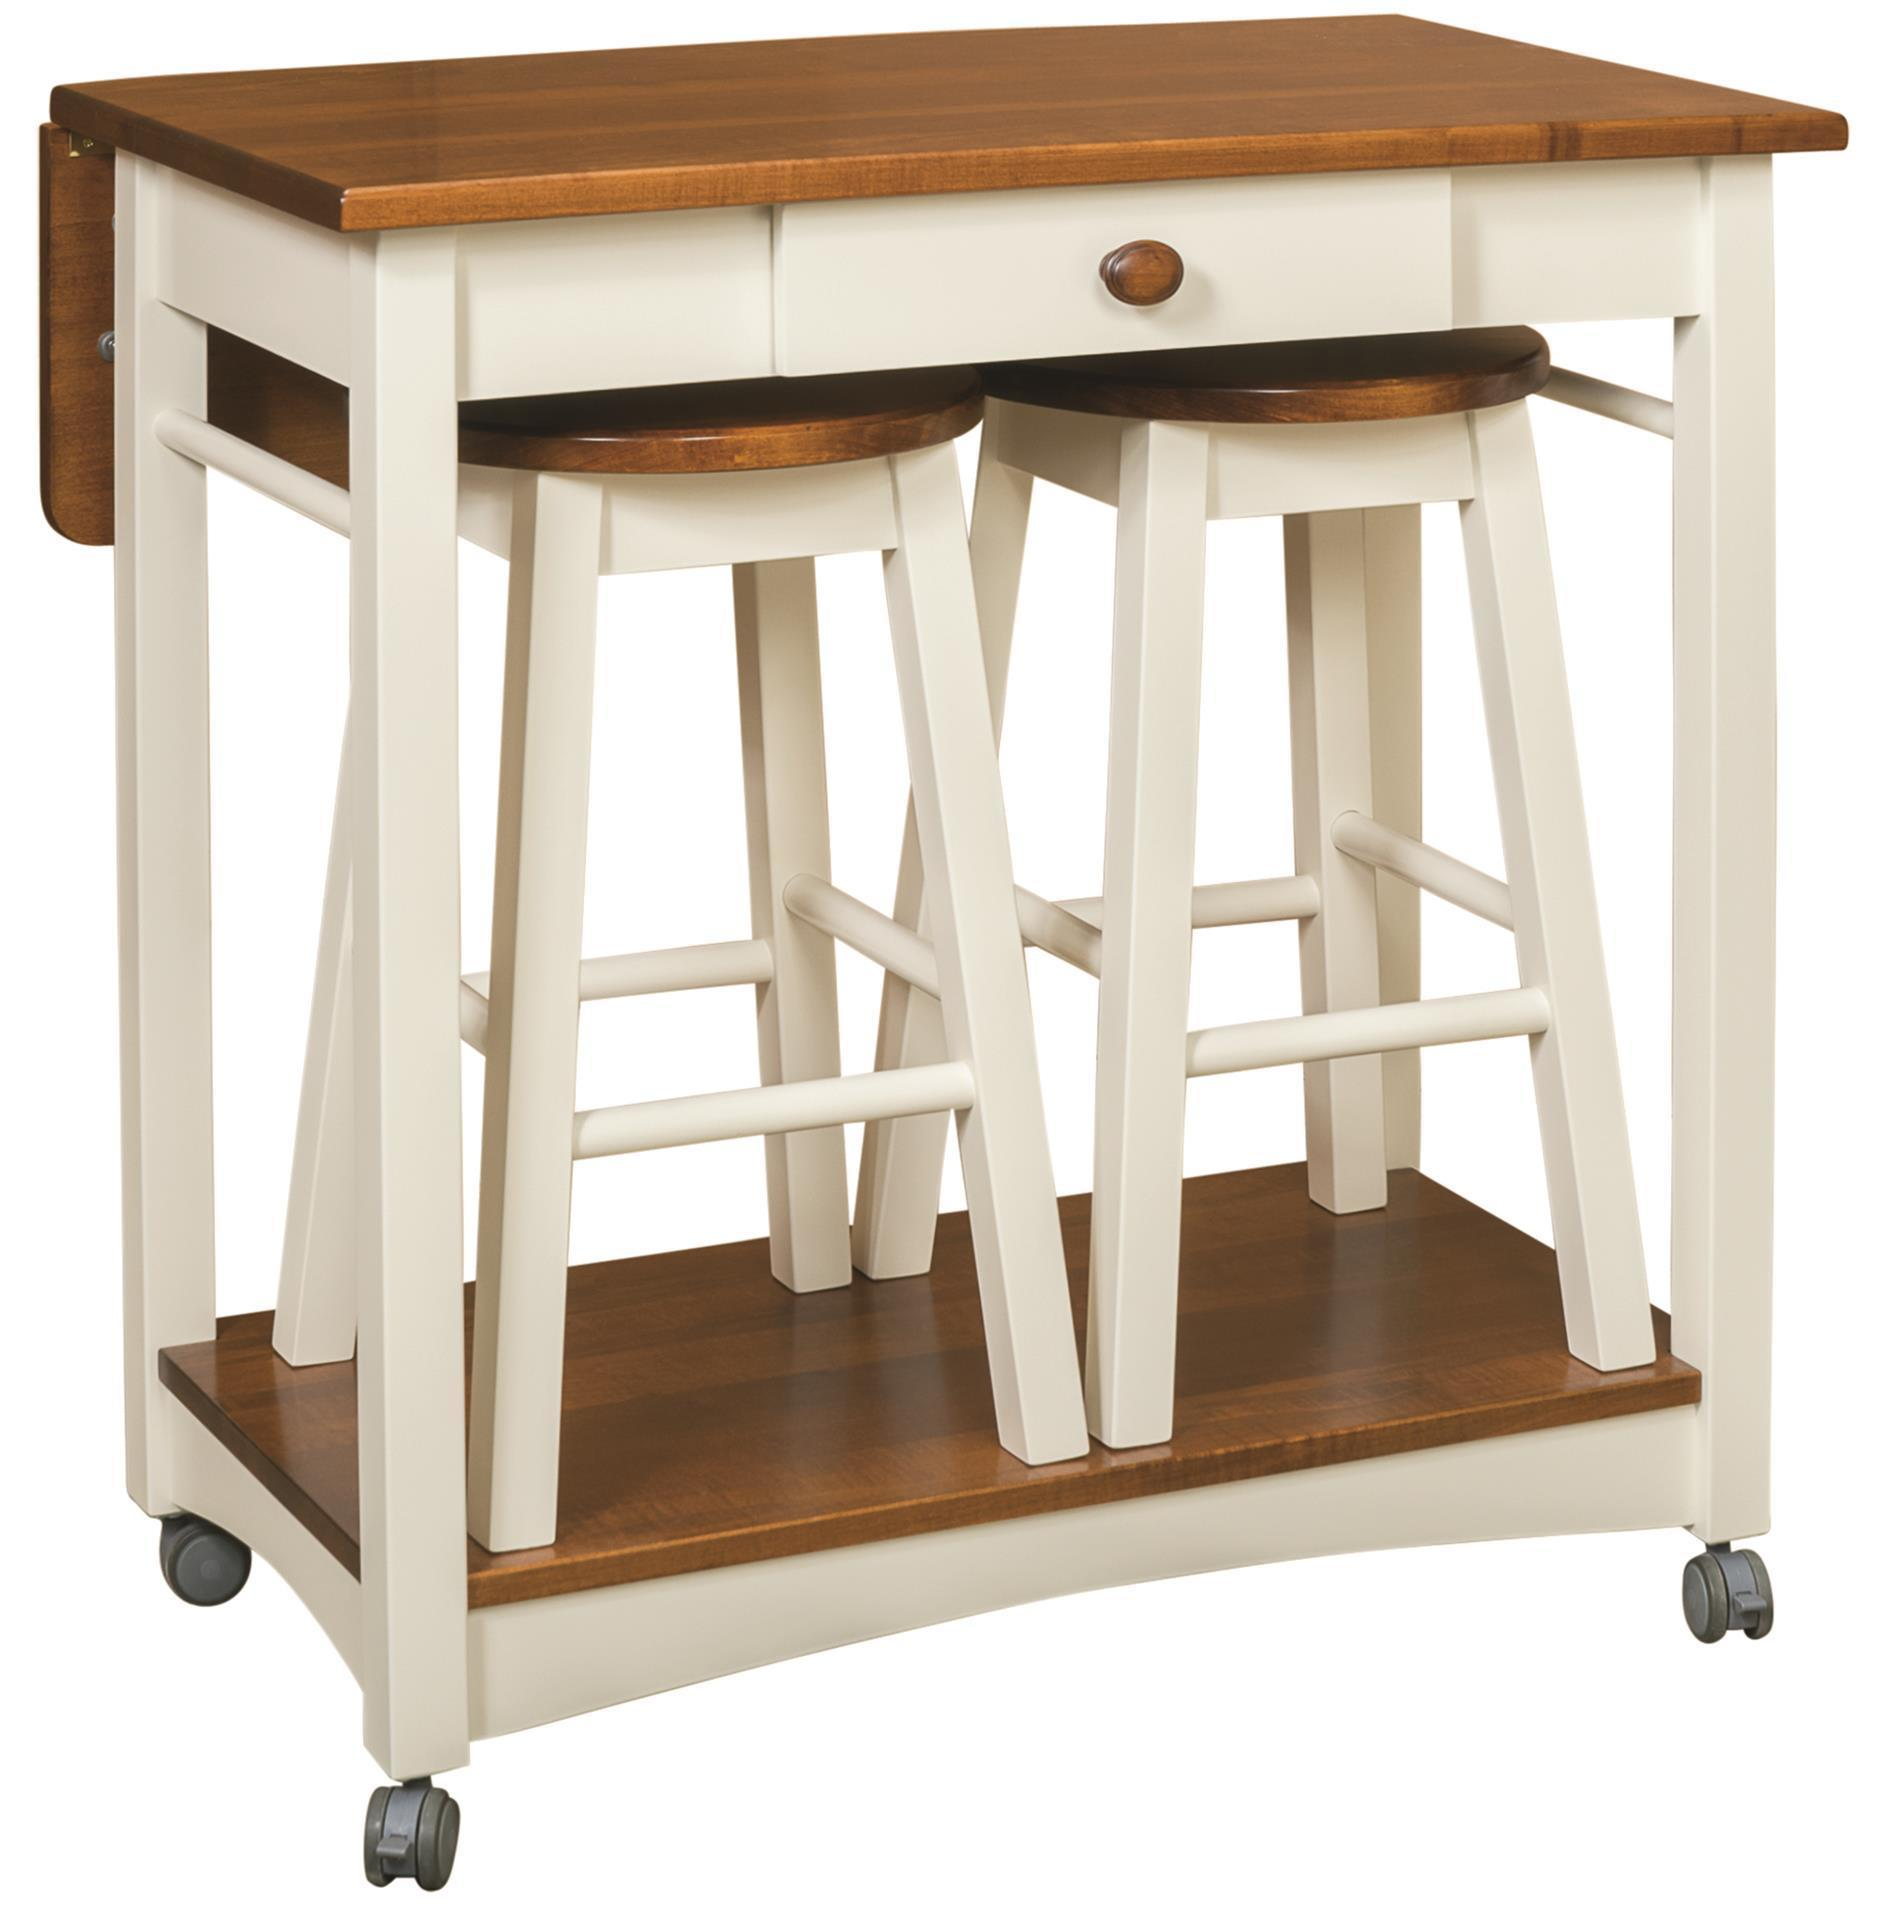 Drop leaf kitchen island with bar stools from dutchcrafters - Kitchen island with stools ...